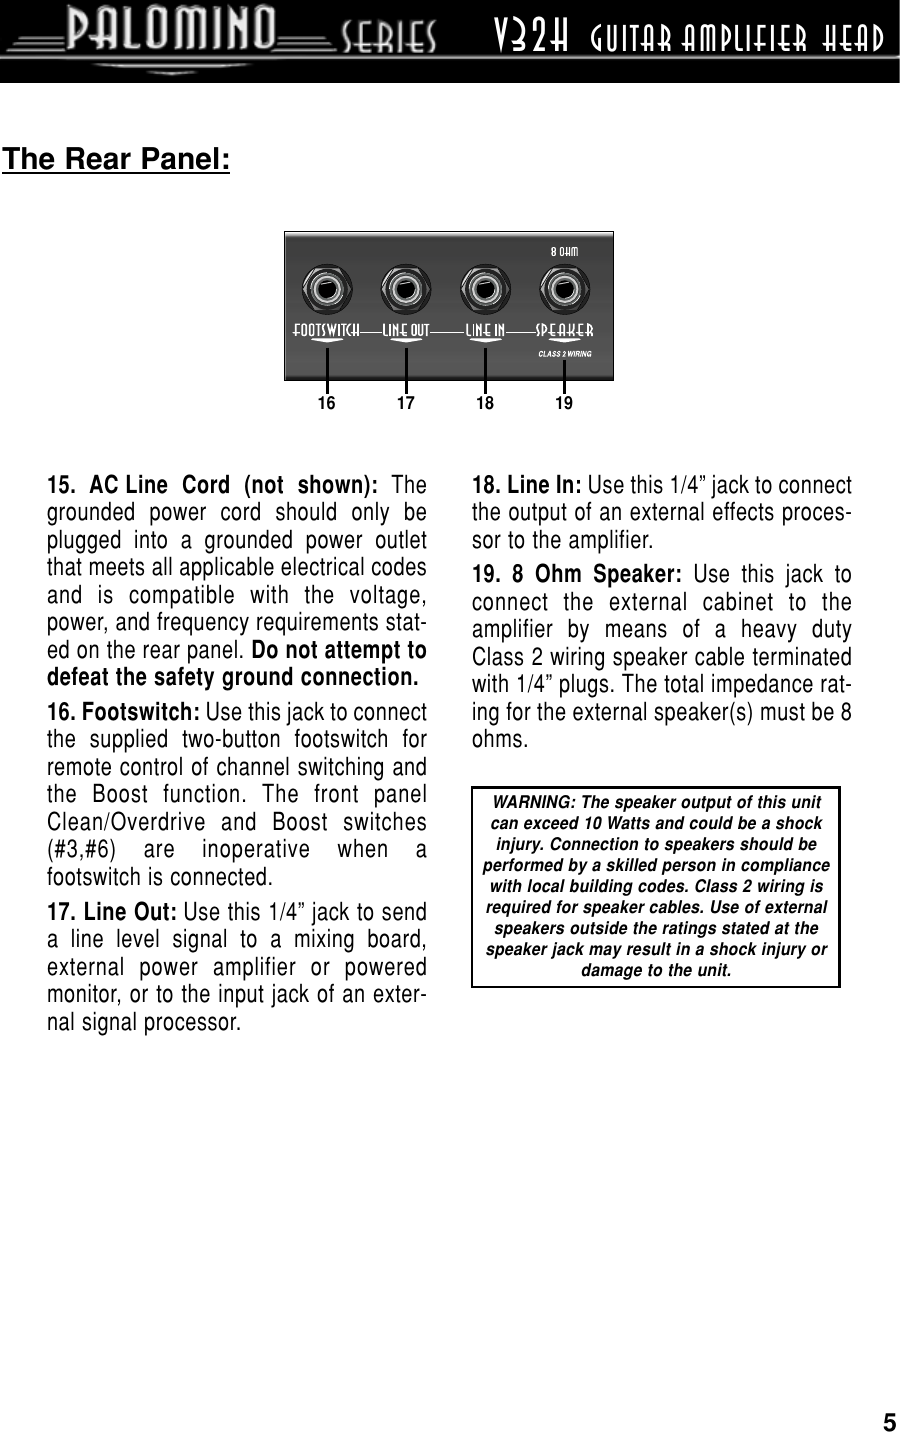 Crate Amplifiers Palomino V32h Users Manual External Speaker Jack Wiring Page 5 Of 12